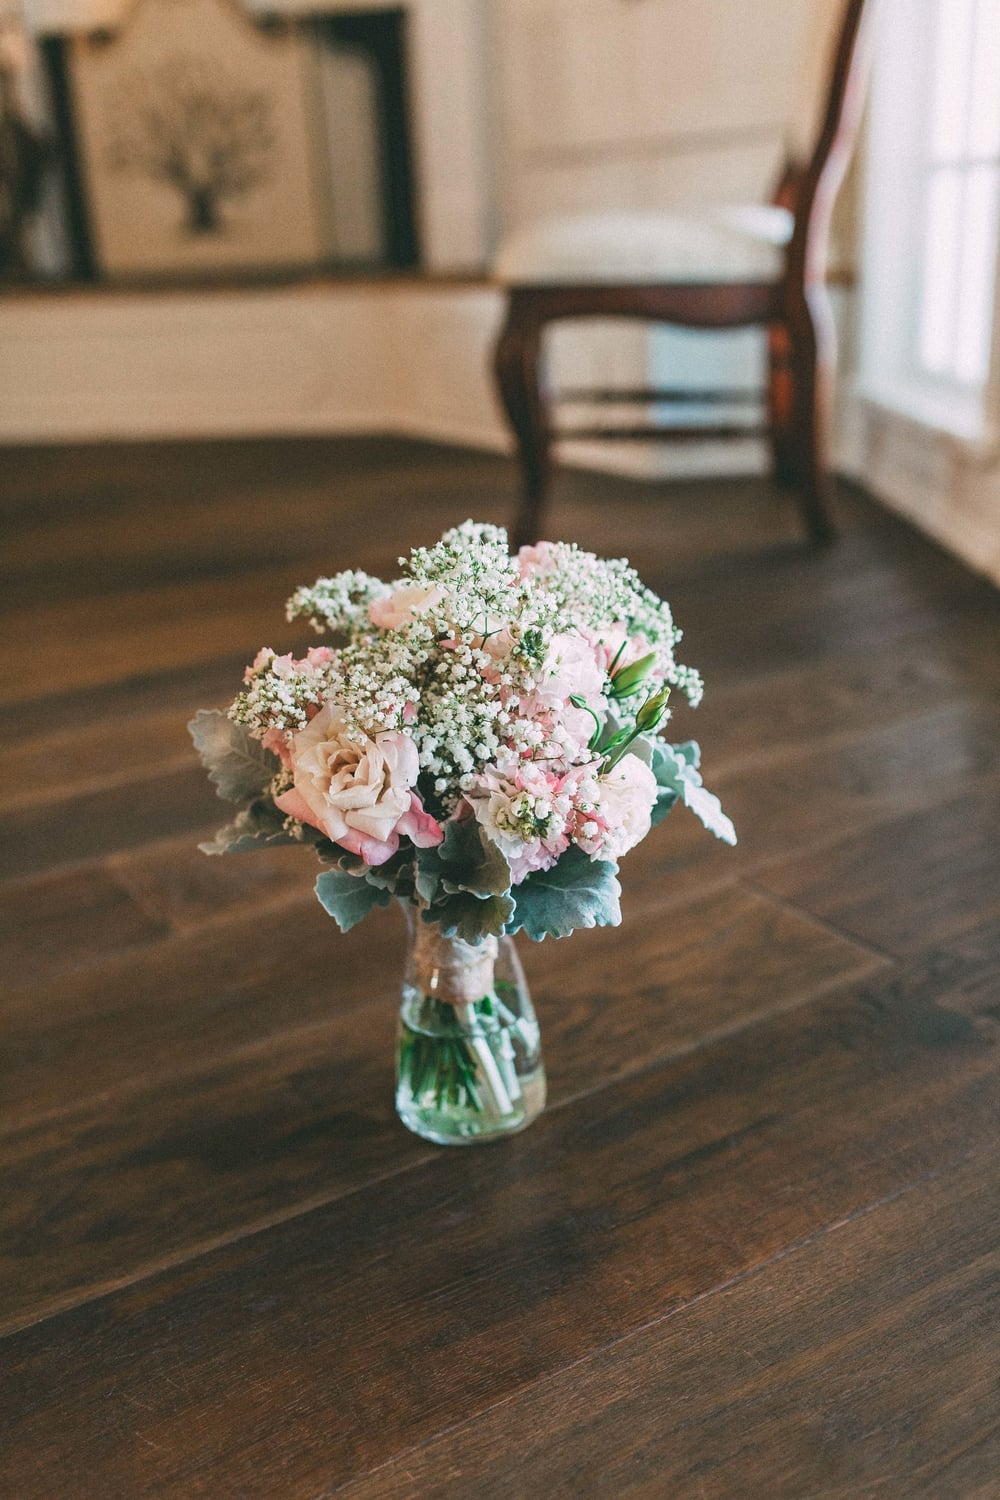 Up The Creek Farms, Palm Bay, Brevard County FL Wedding, bridal suite, flowers detail photo